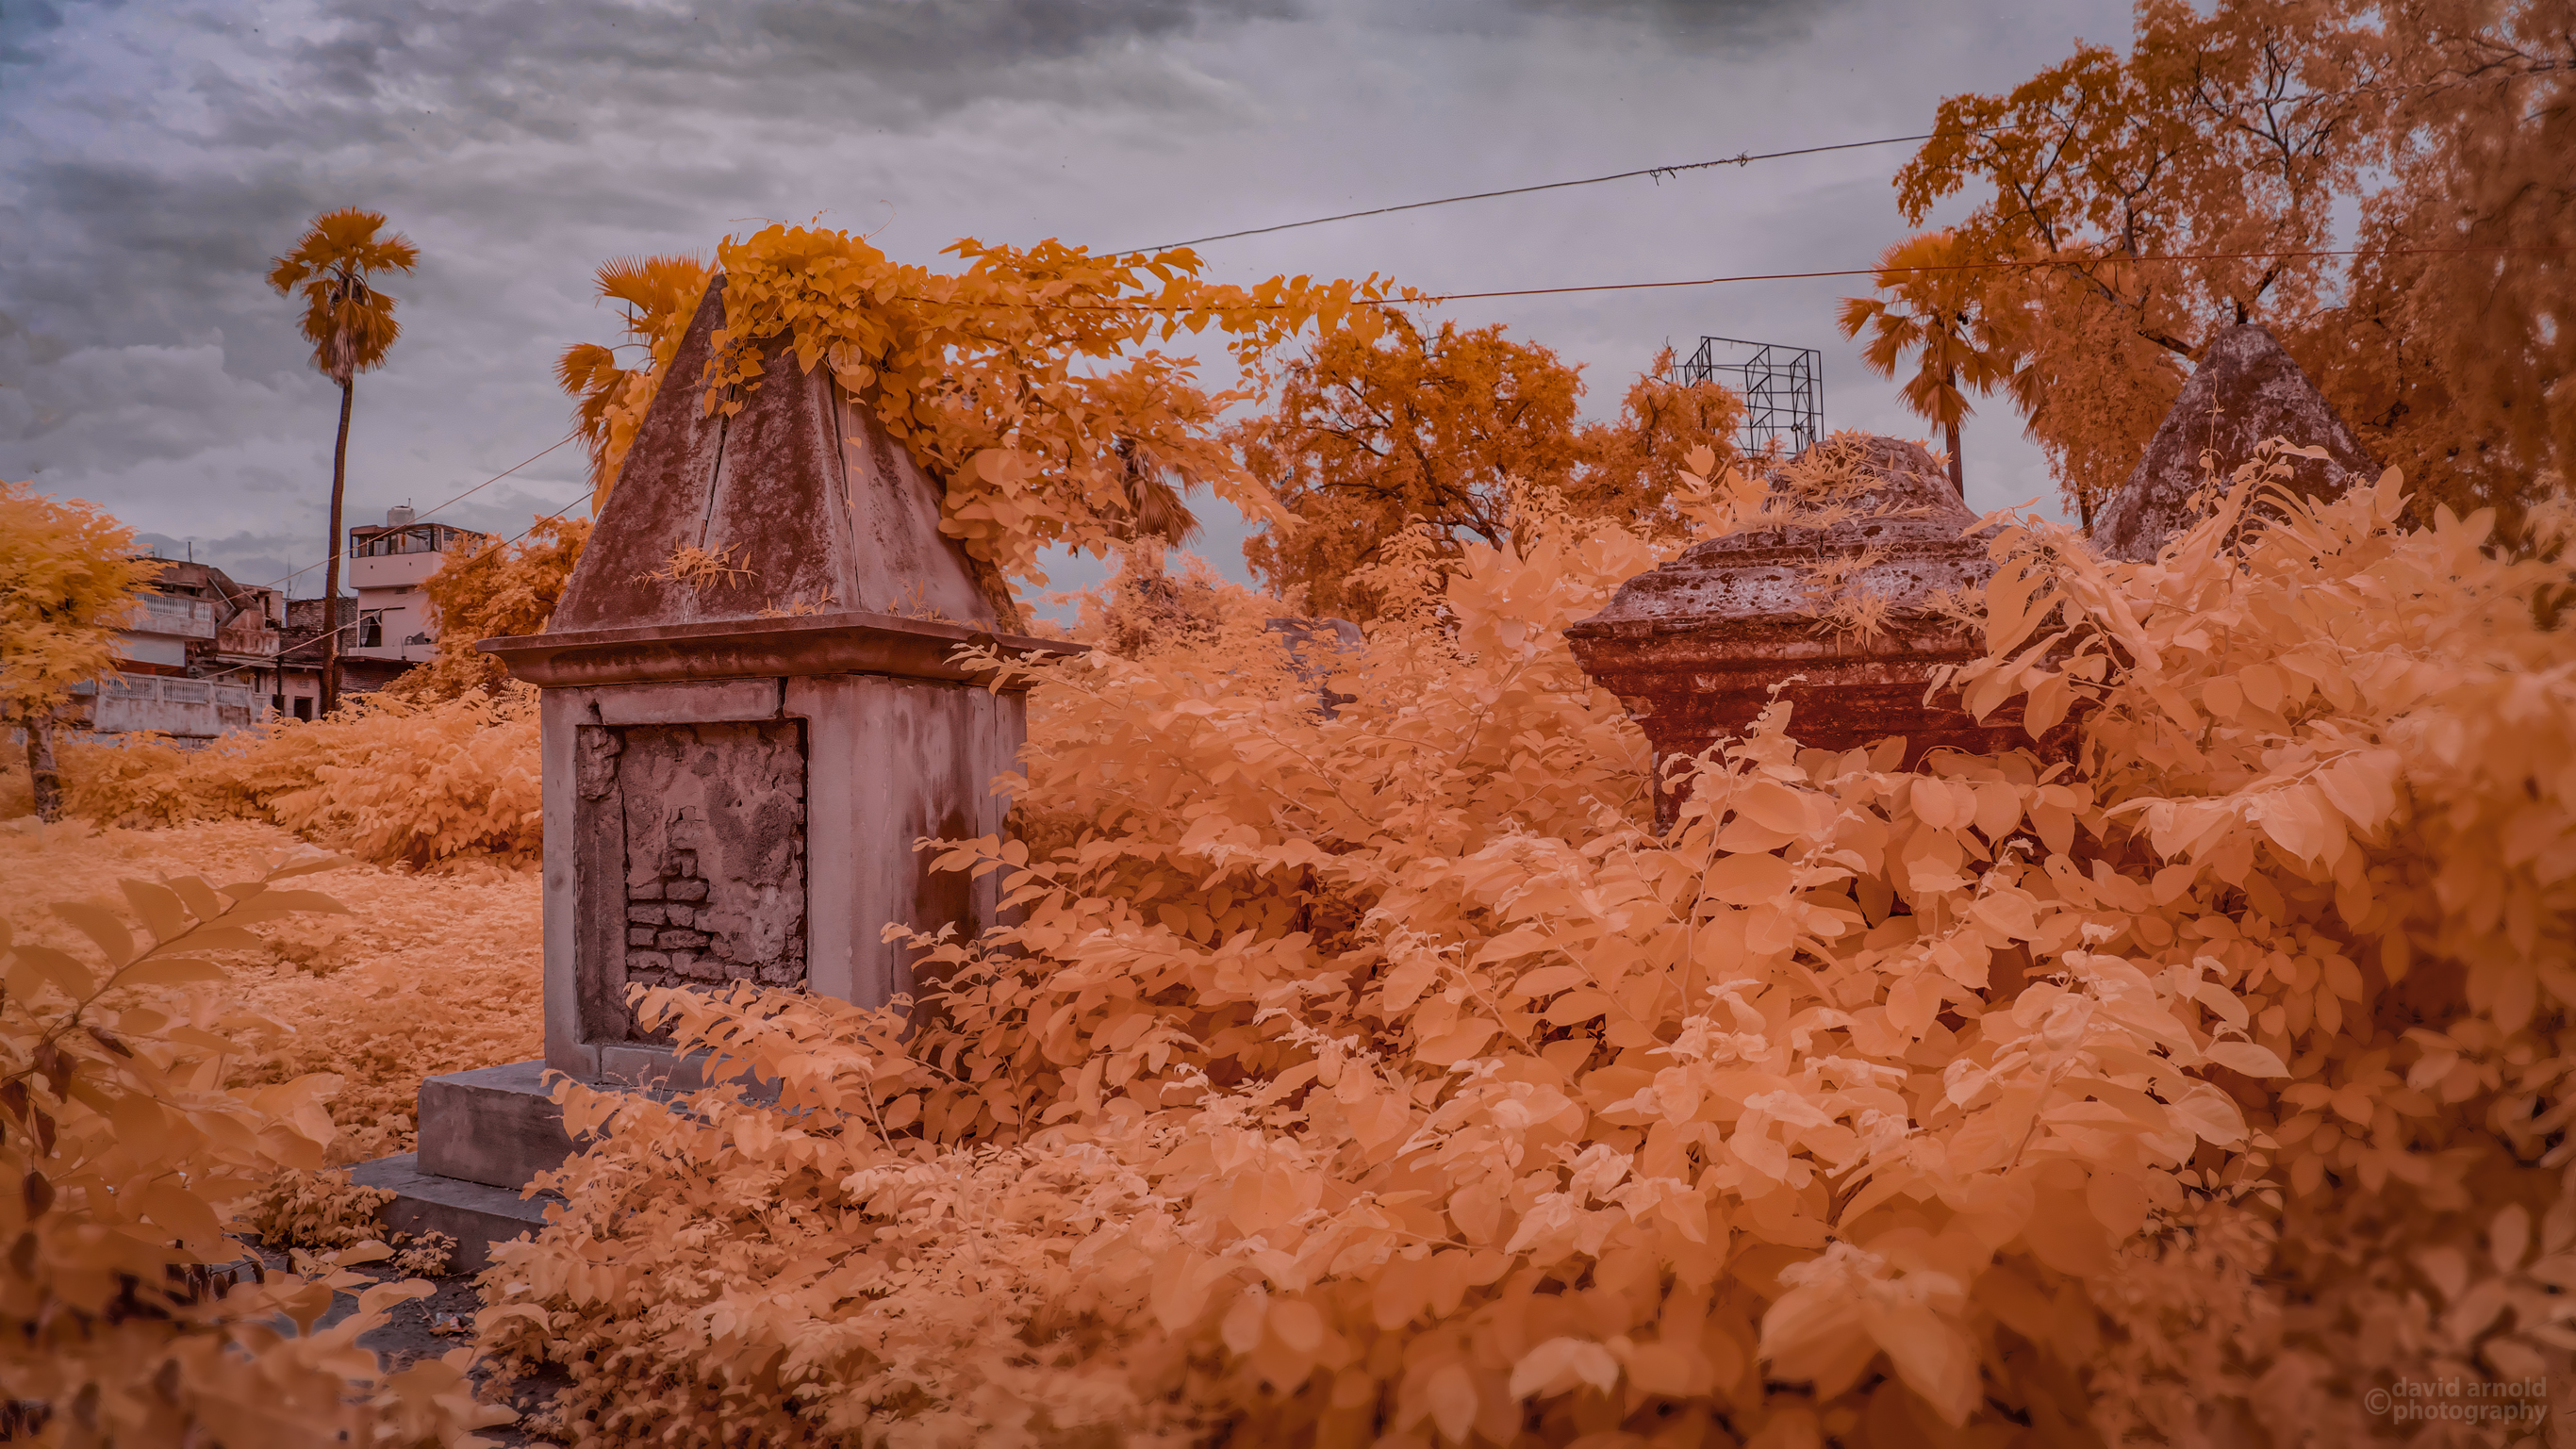 Overgrown tombs in British Cemetery, Buxar, India